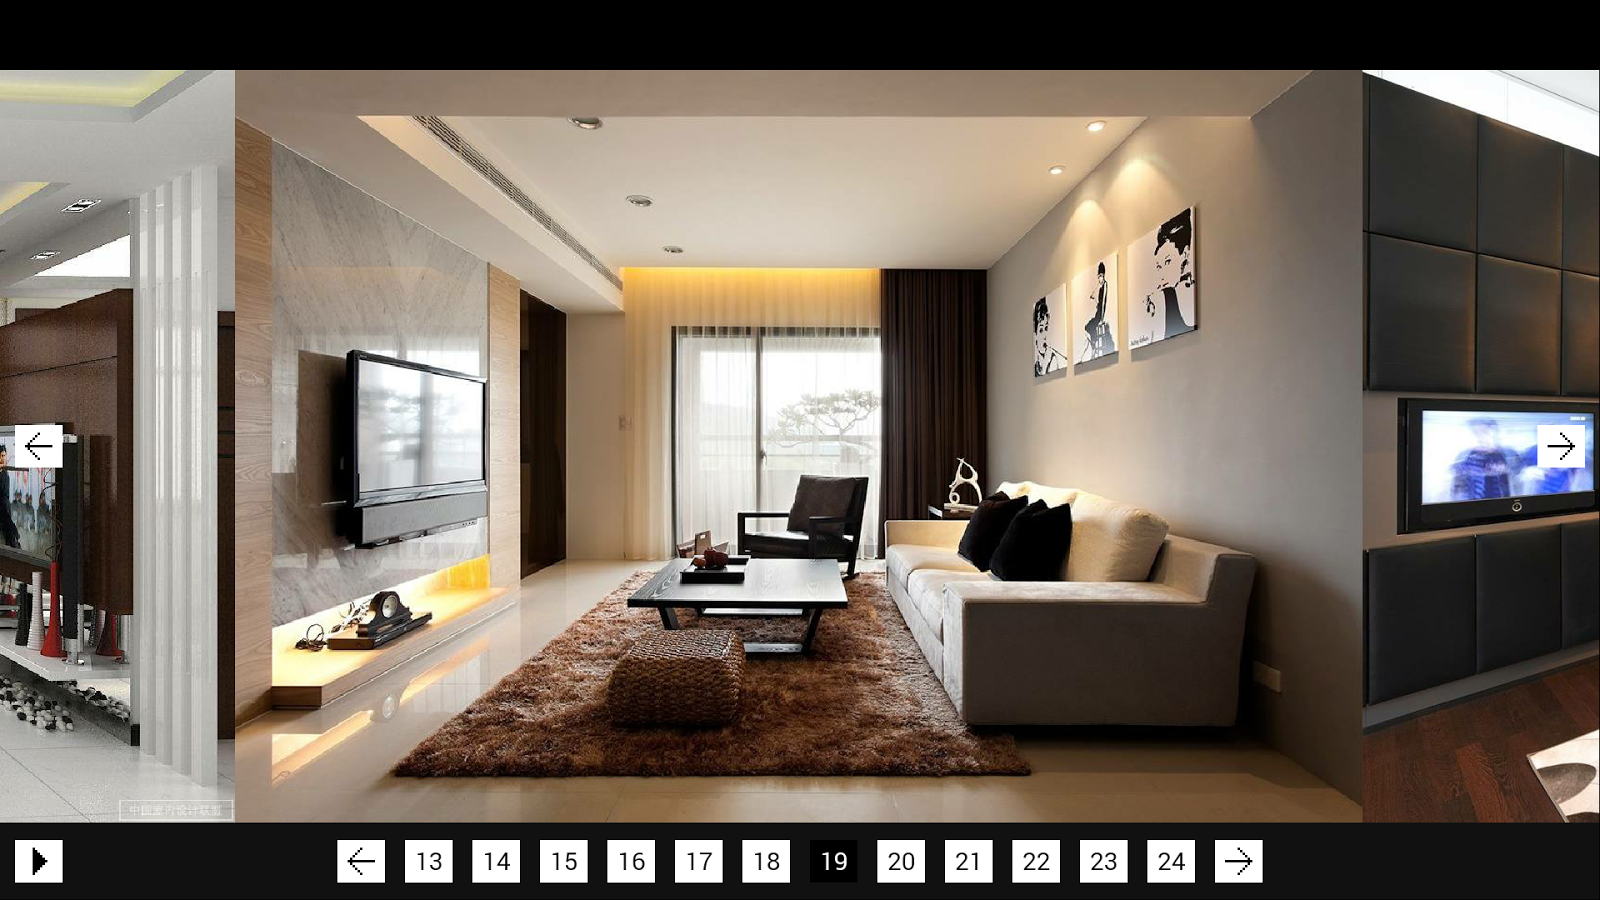 design in home. Home Interior Design  screenshot Android Apps on Google Play